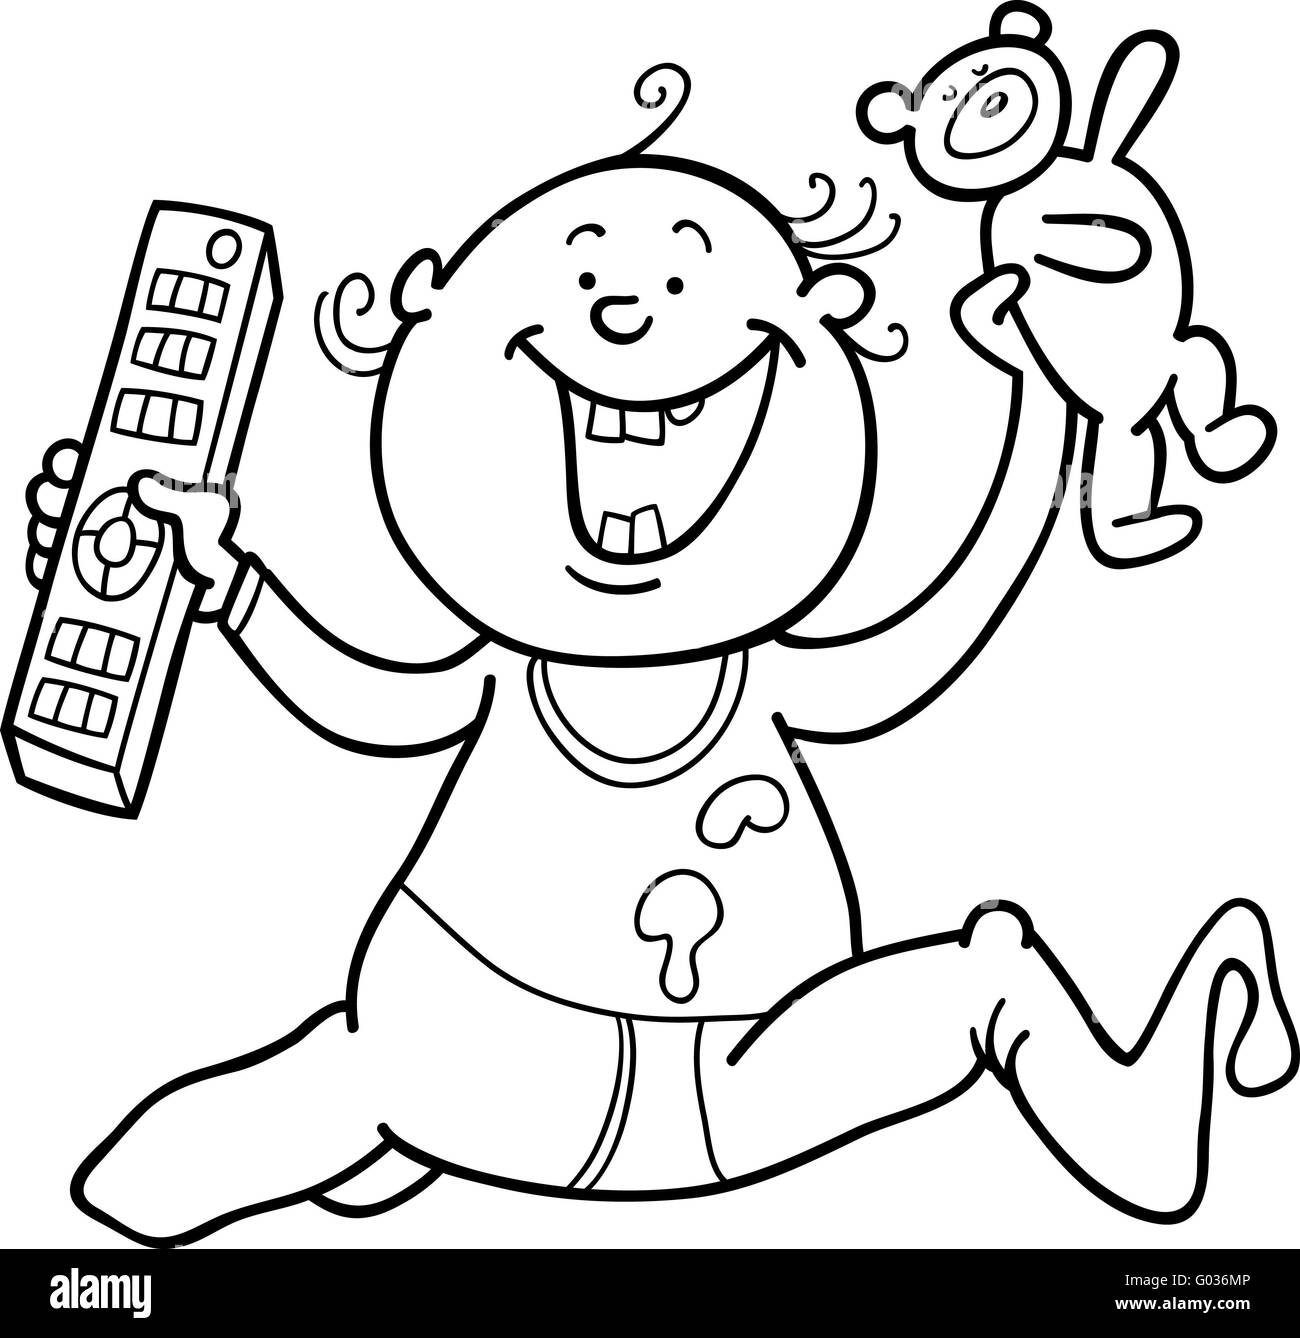 boy with remote control and teddy bear for colorin - Stock Image